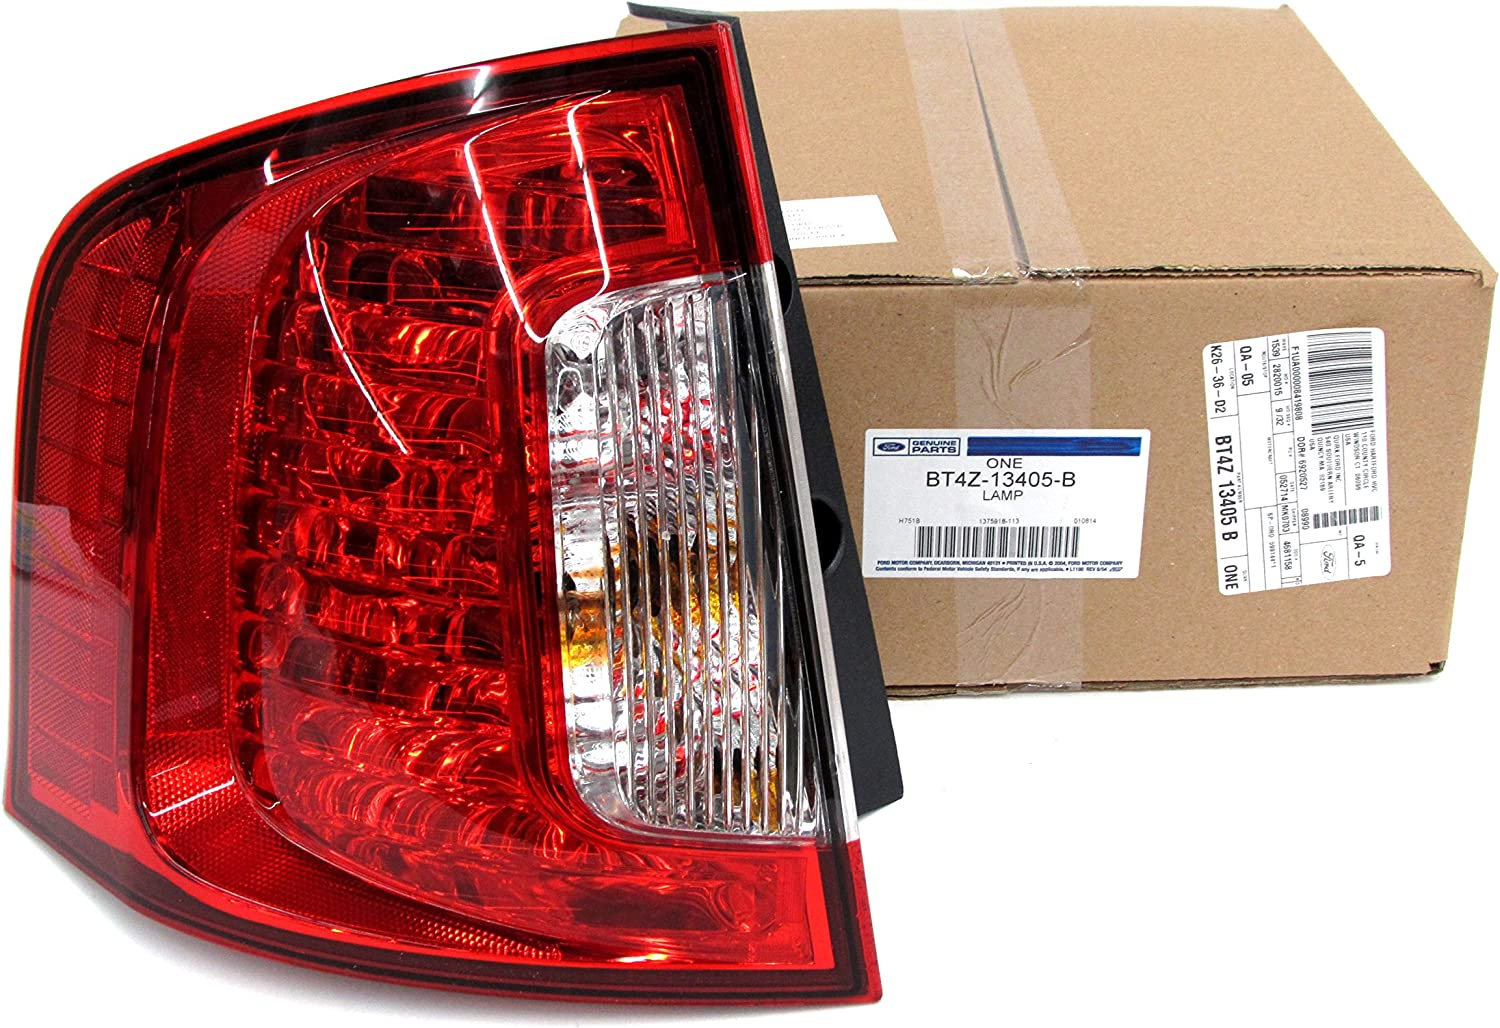 Genuine Ford BT4Z-13405-A Tail Lamp Assembly